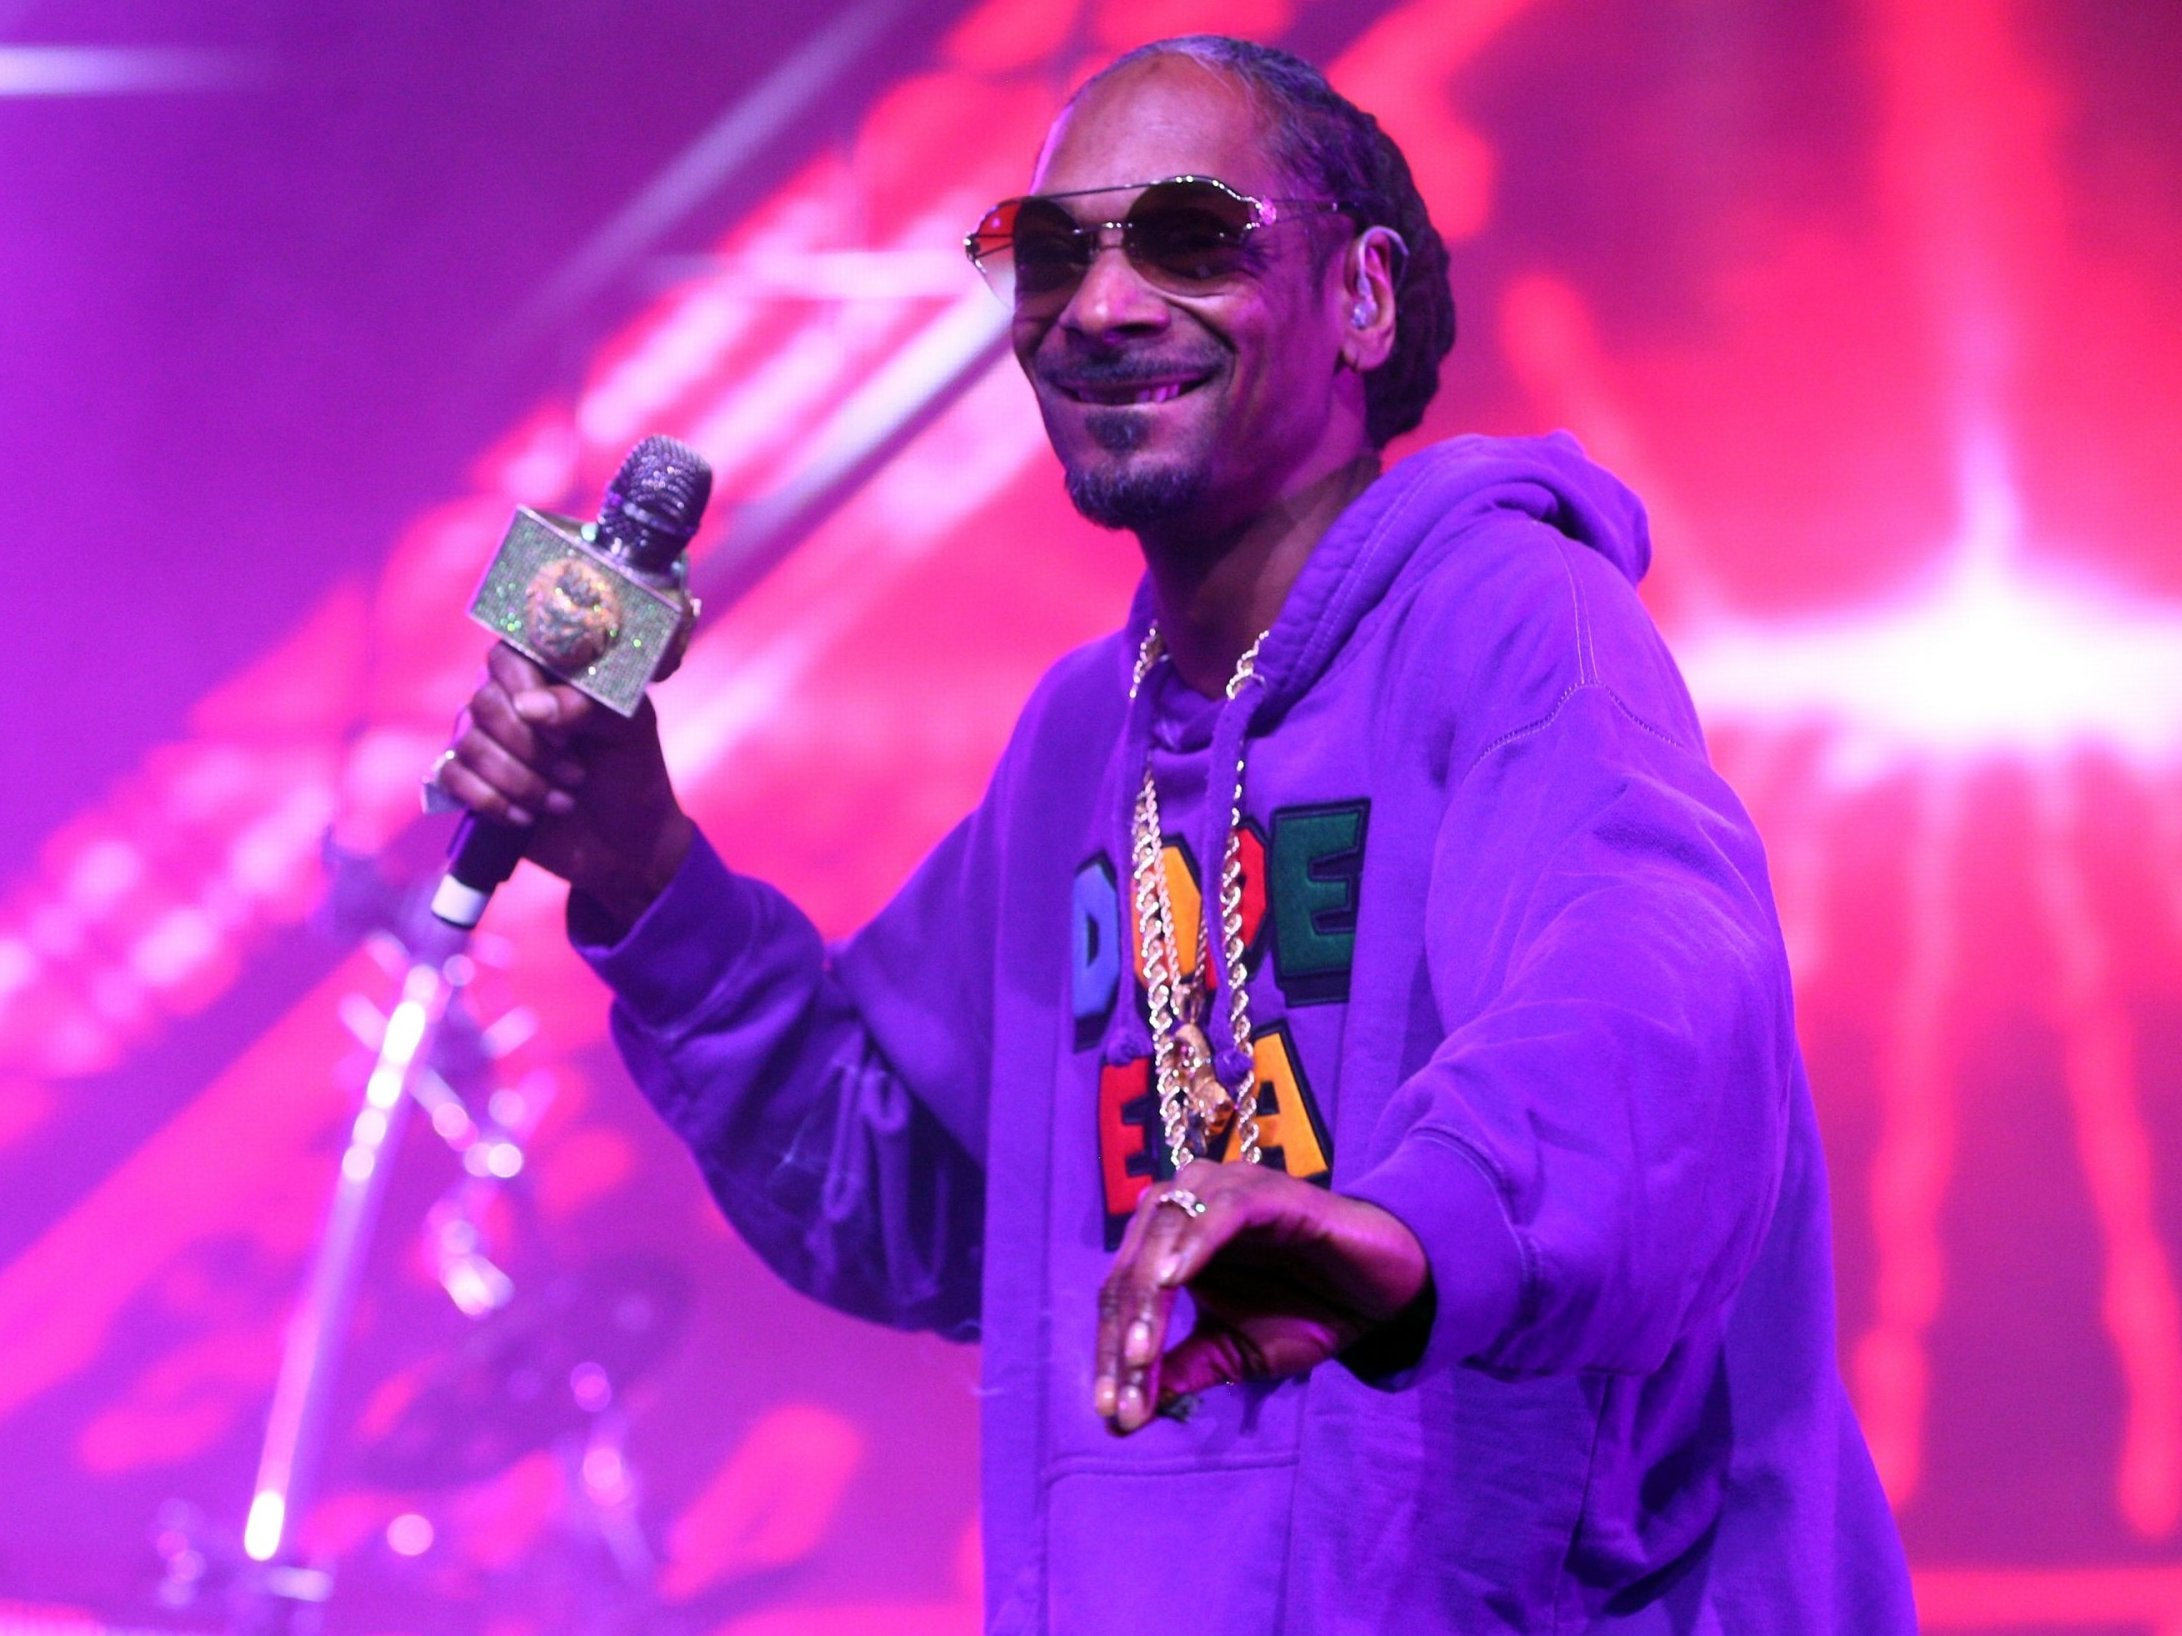 Snoop Dogg faces anger over photos of himself next to Paul